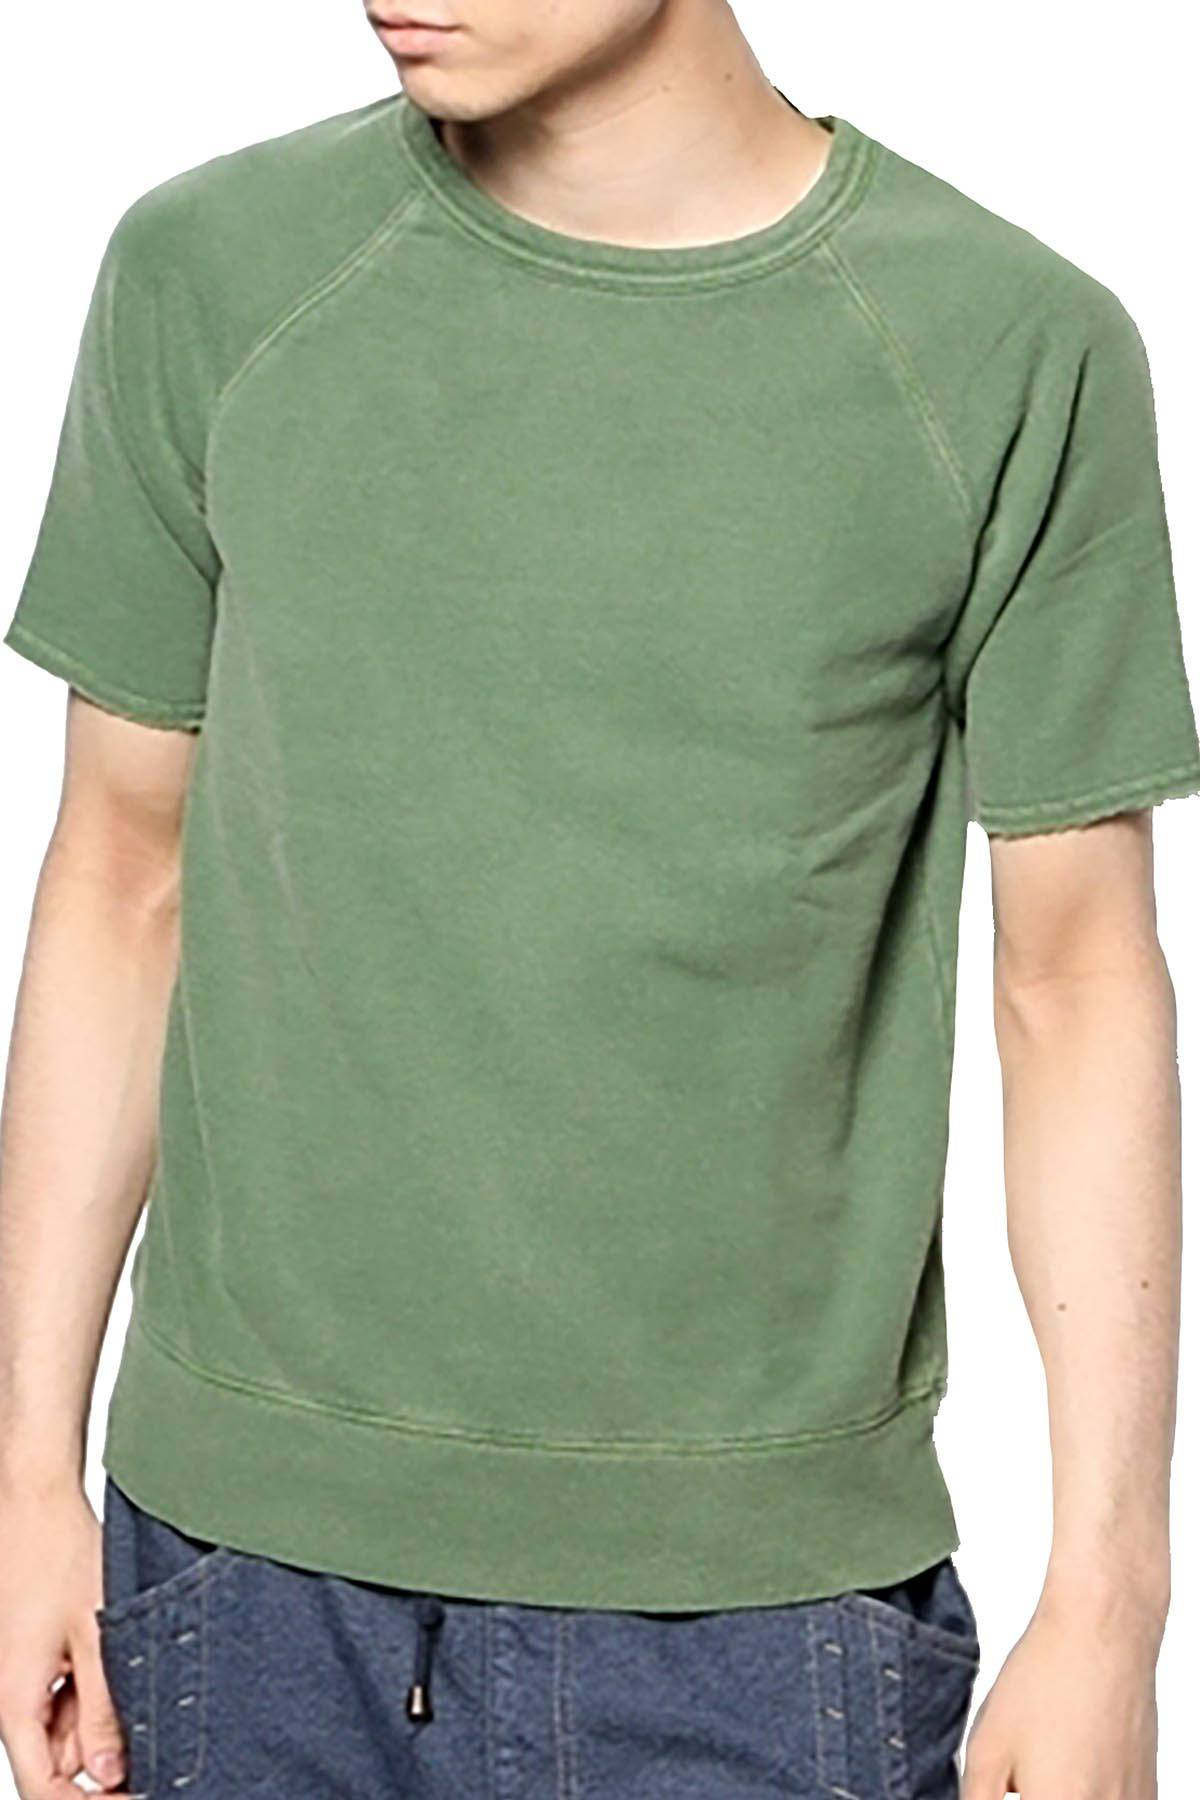 Rxmance Unisex Grass Green Short Sleeve Sweatshirt